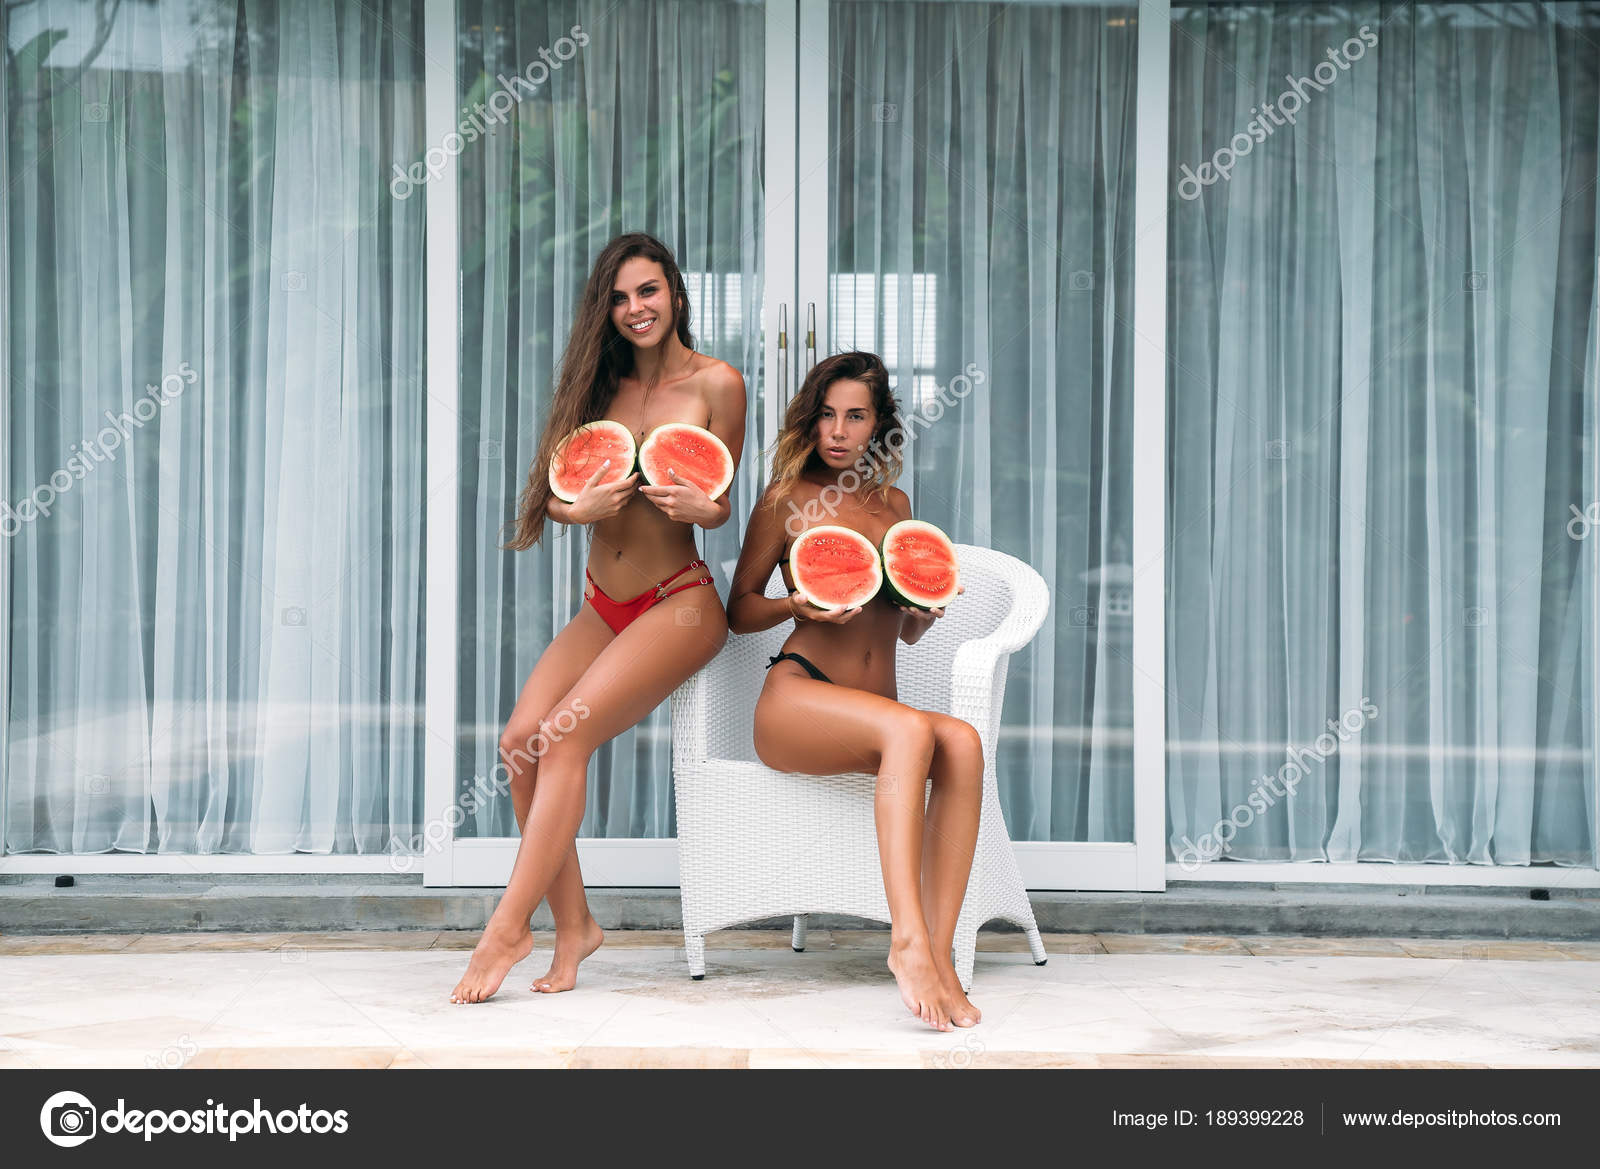 two nice girls with curly hair holds a watermelon in their hands and